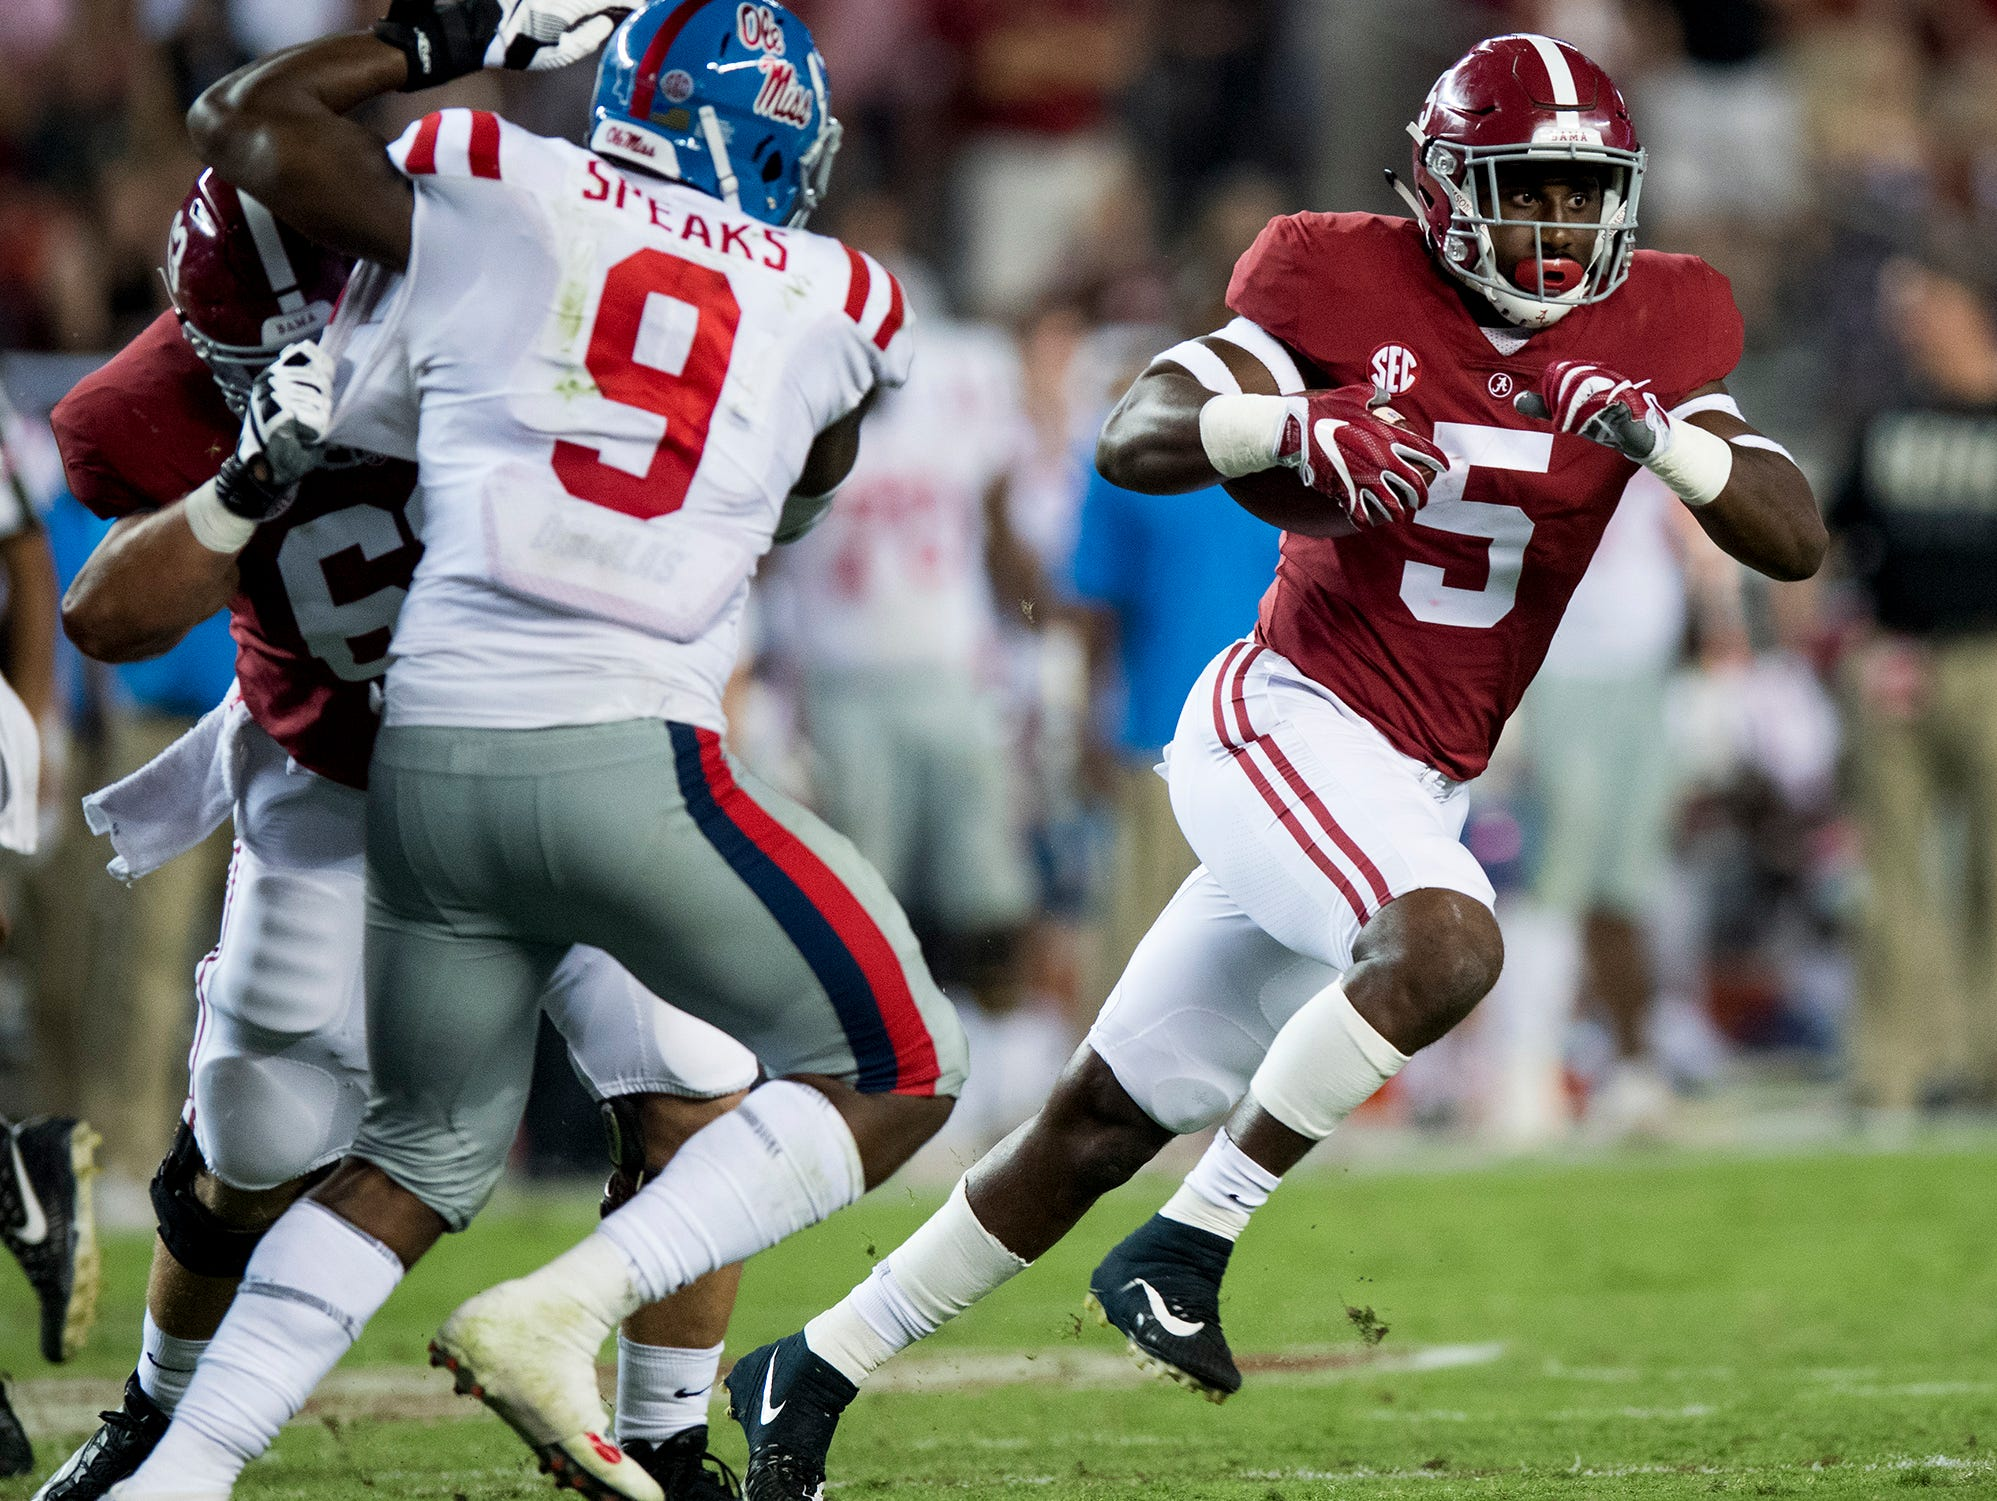 Alabama tight end Ronnie Clark (5) carries against Ole Miss in second half action at Bryant-Denny Stadium in Tuscaloosa, Ala. on Saturday September 30, 2017. (Mickey Welsh / Montgomery Advertiser)